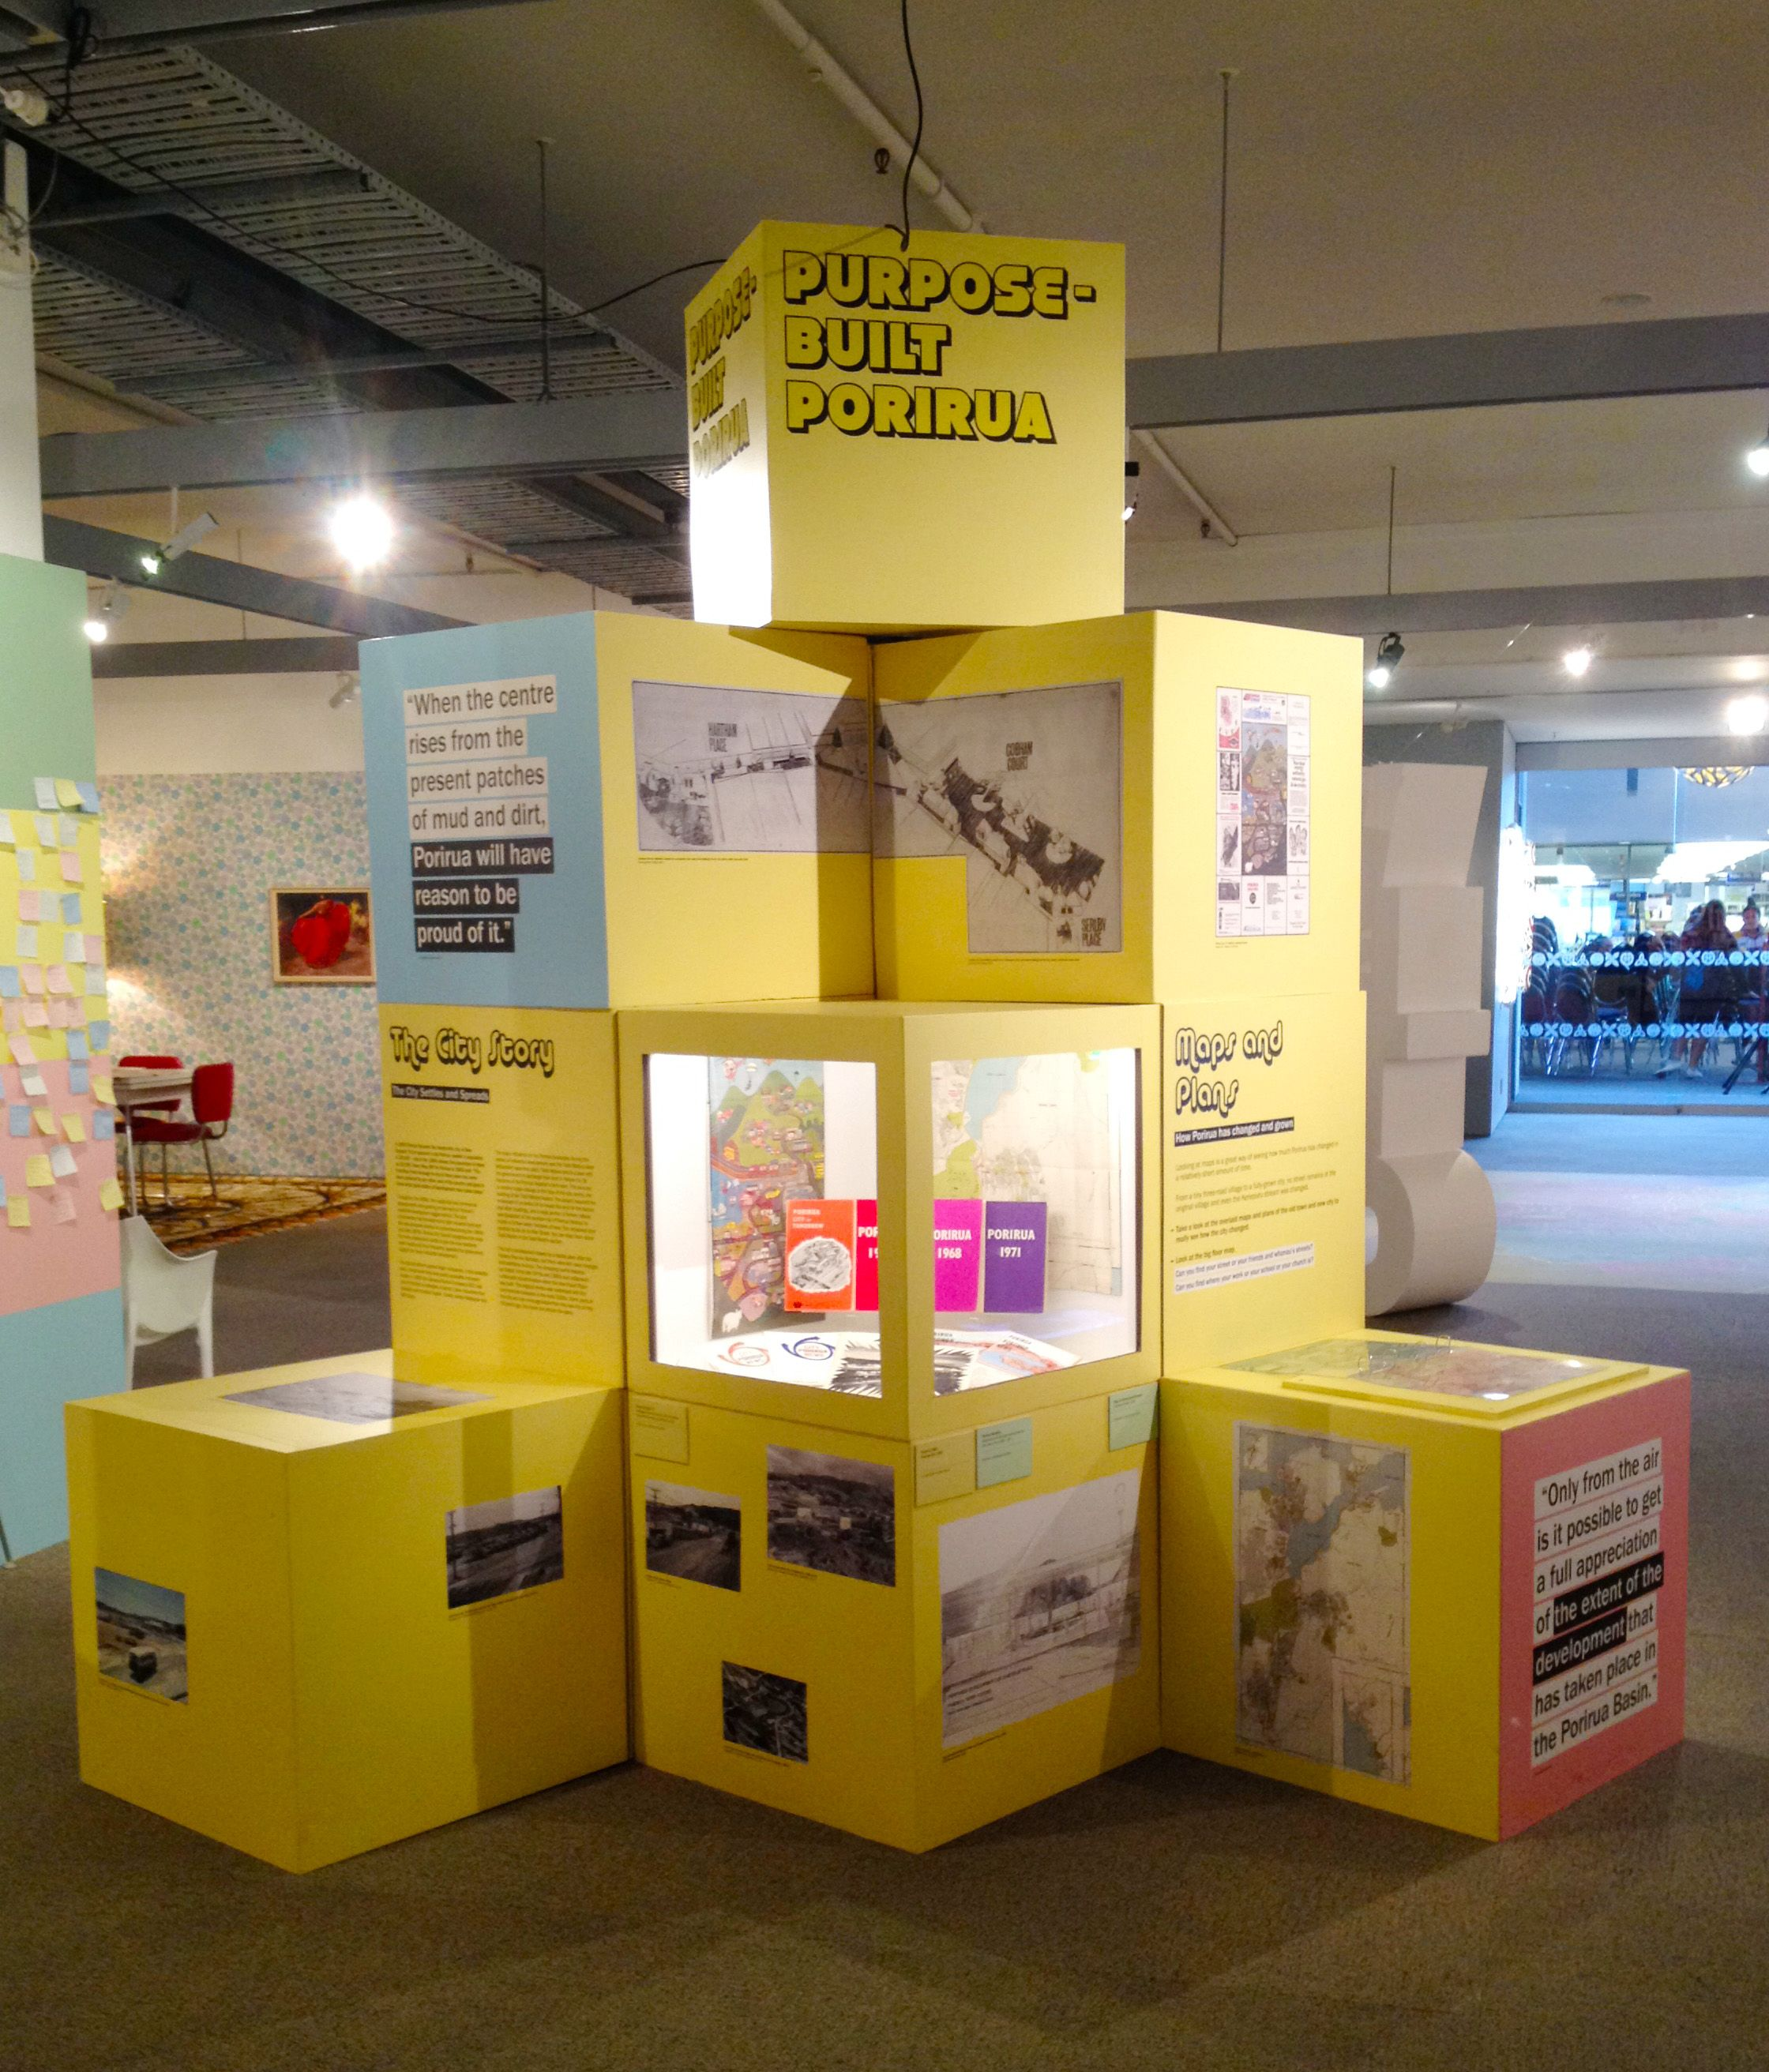 Built City Exhibition Pataka Art Museum In Porirua Nz #boxes Design